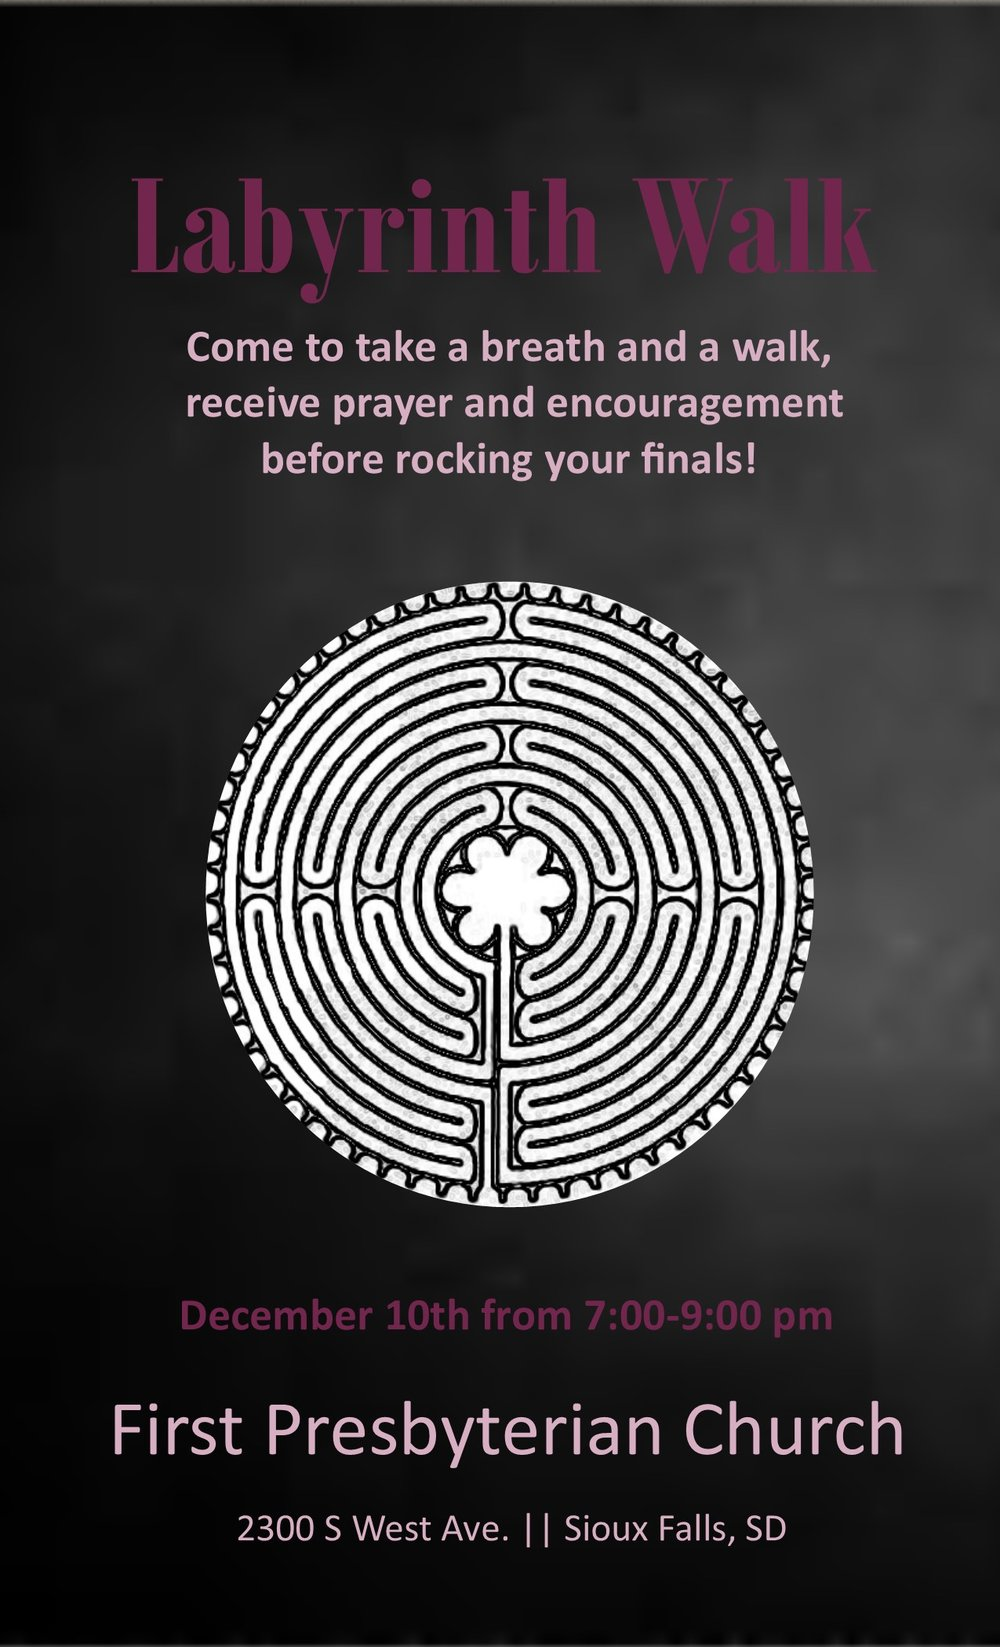 Labyrinth Walk Poster 12.10.17.jpg